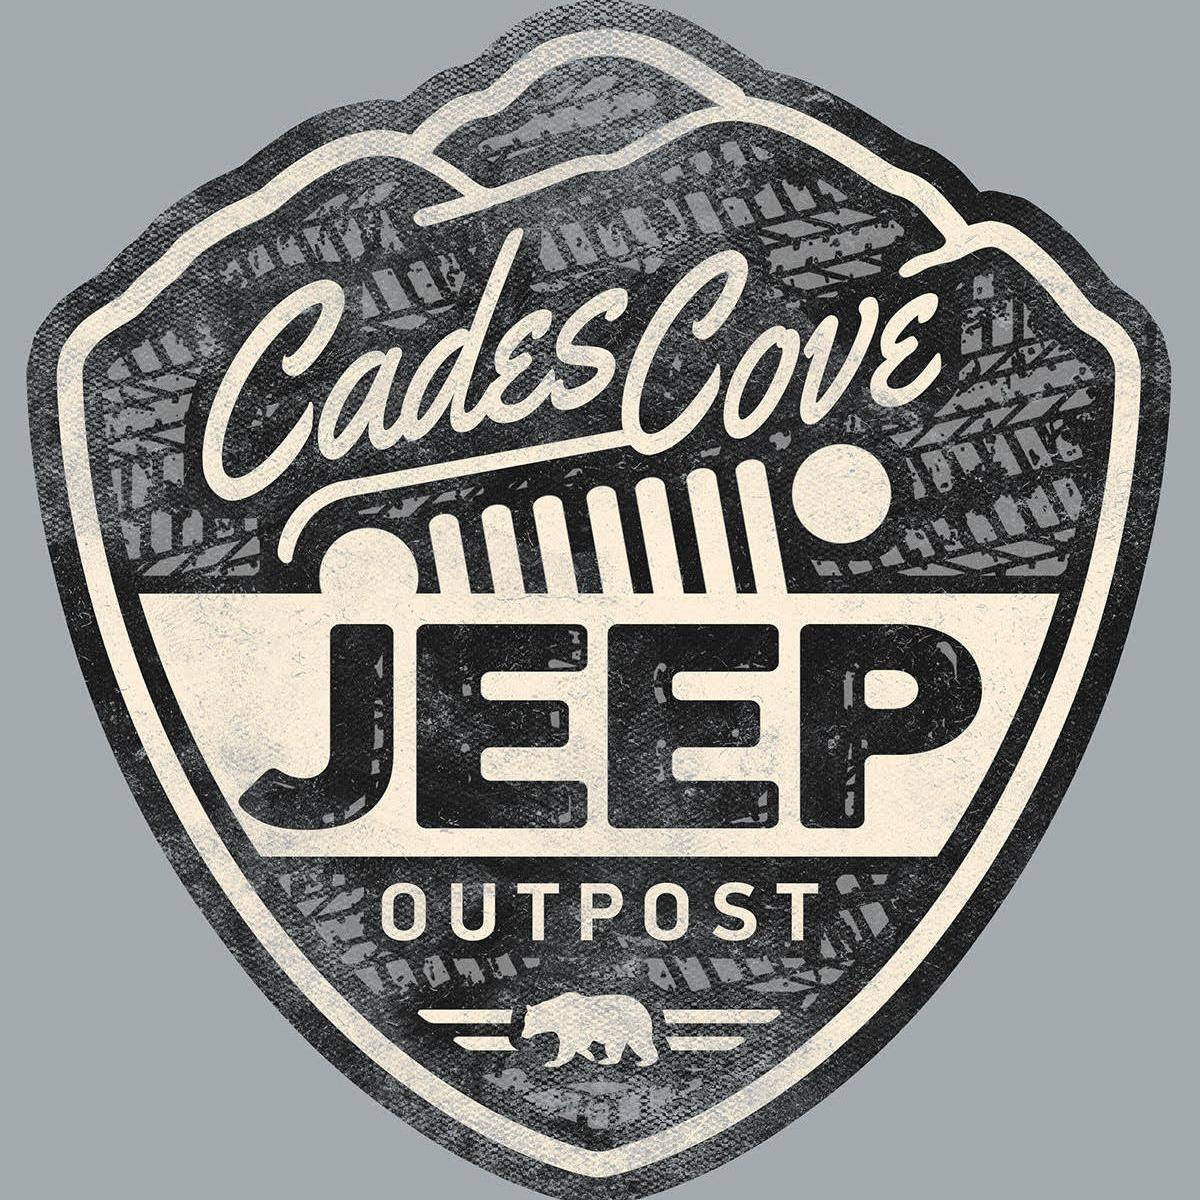 Cades Cove Jeep Outpost image 1